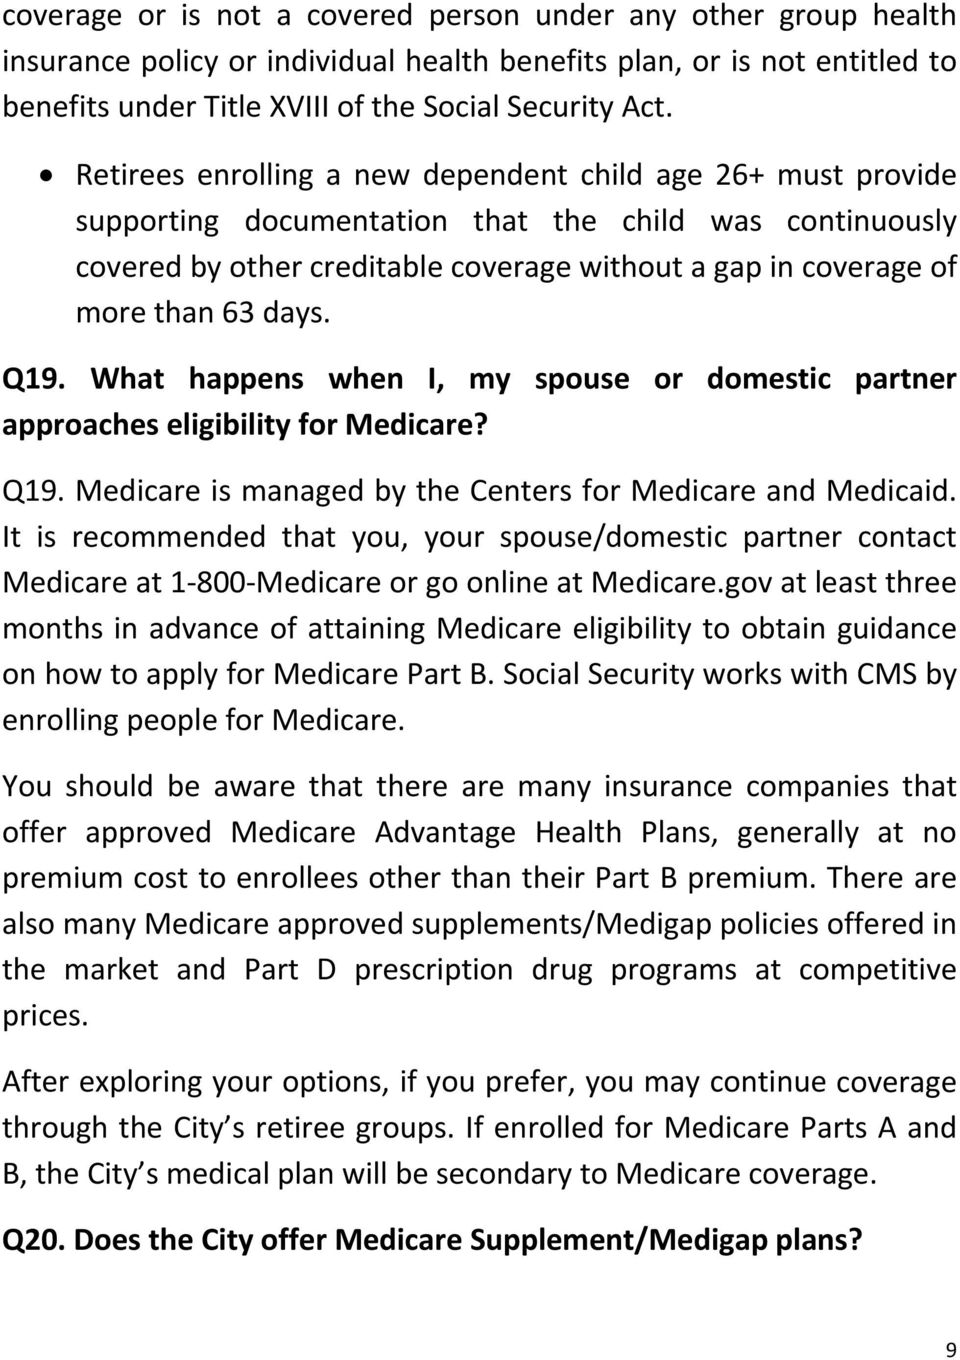 days. Q19. What happens when I, my spouse or domestic partner approaches eligibility for Medicare? Q19. Medicare is managed by the Centers for Medicare and Medicaid.